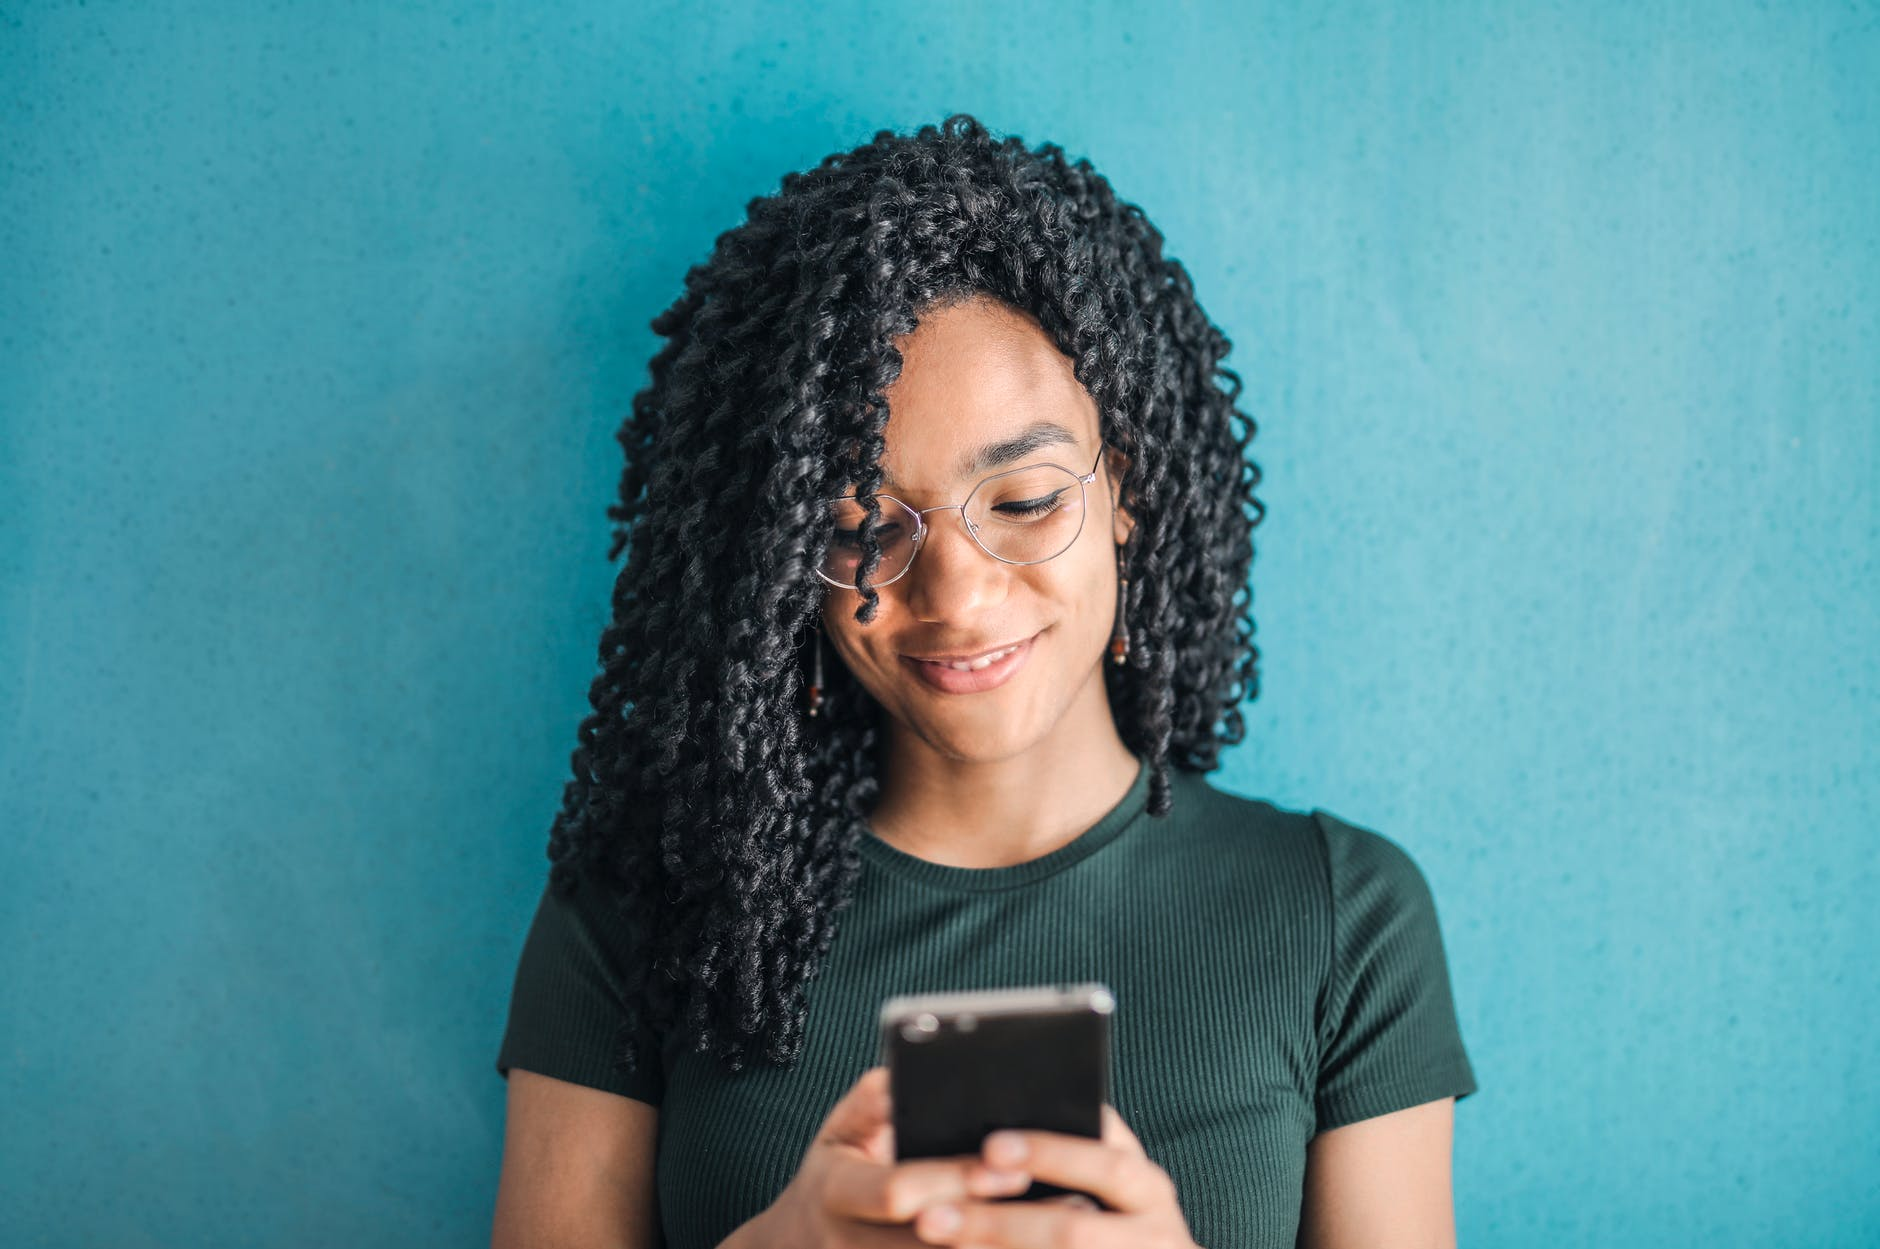 portrait photo of smiling woman in black t shirt and glasses using her smartphone